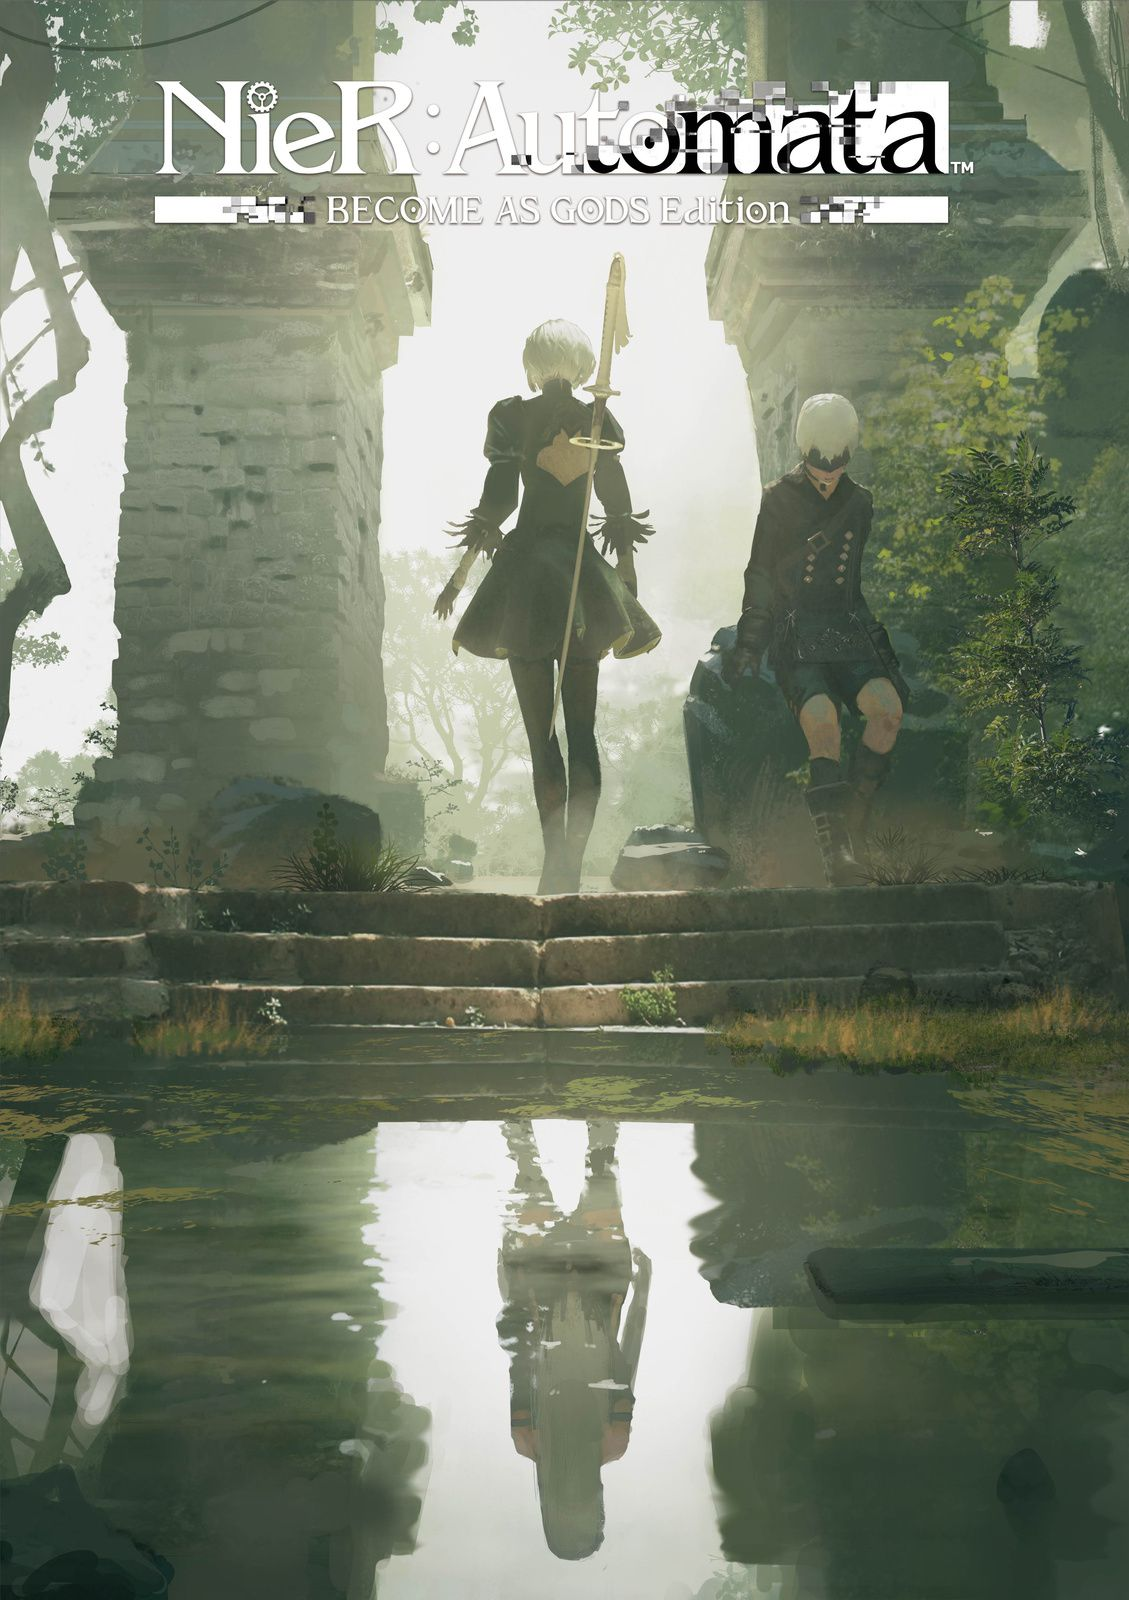 [TEST] NIER AUTOMATA BECOME AS GODS EDITION XBOX ONE X : renversant et troublant